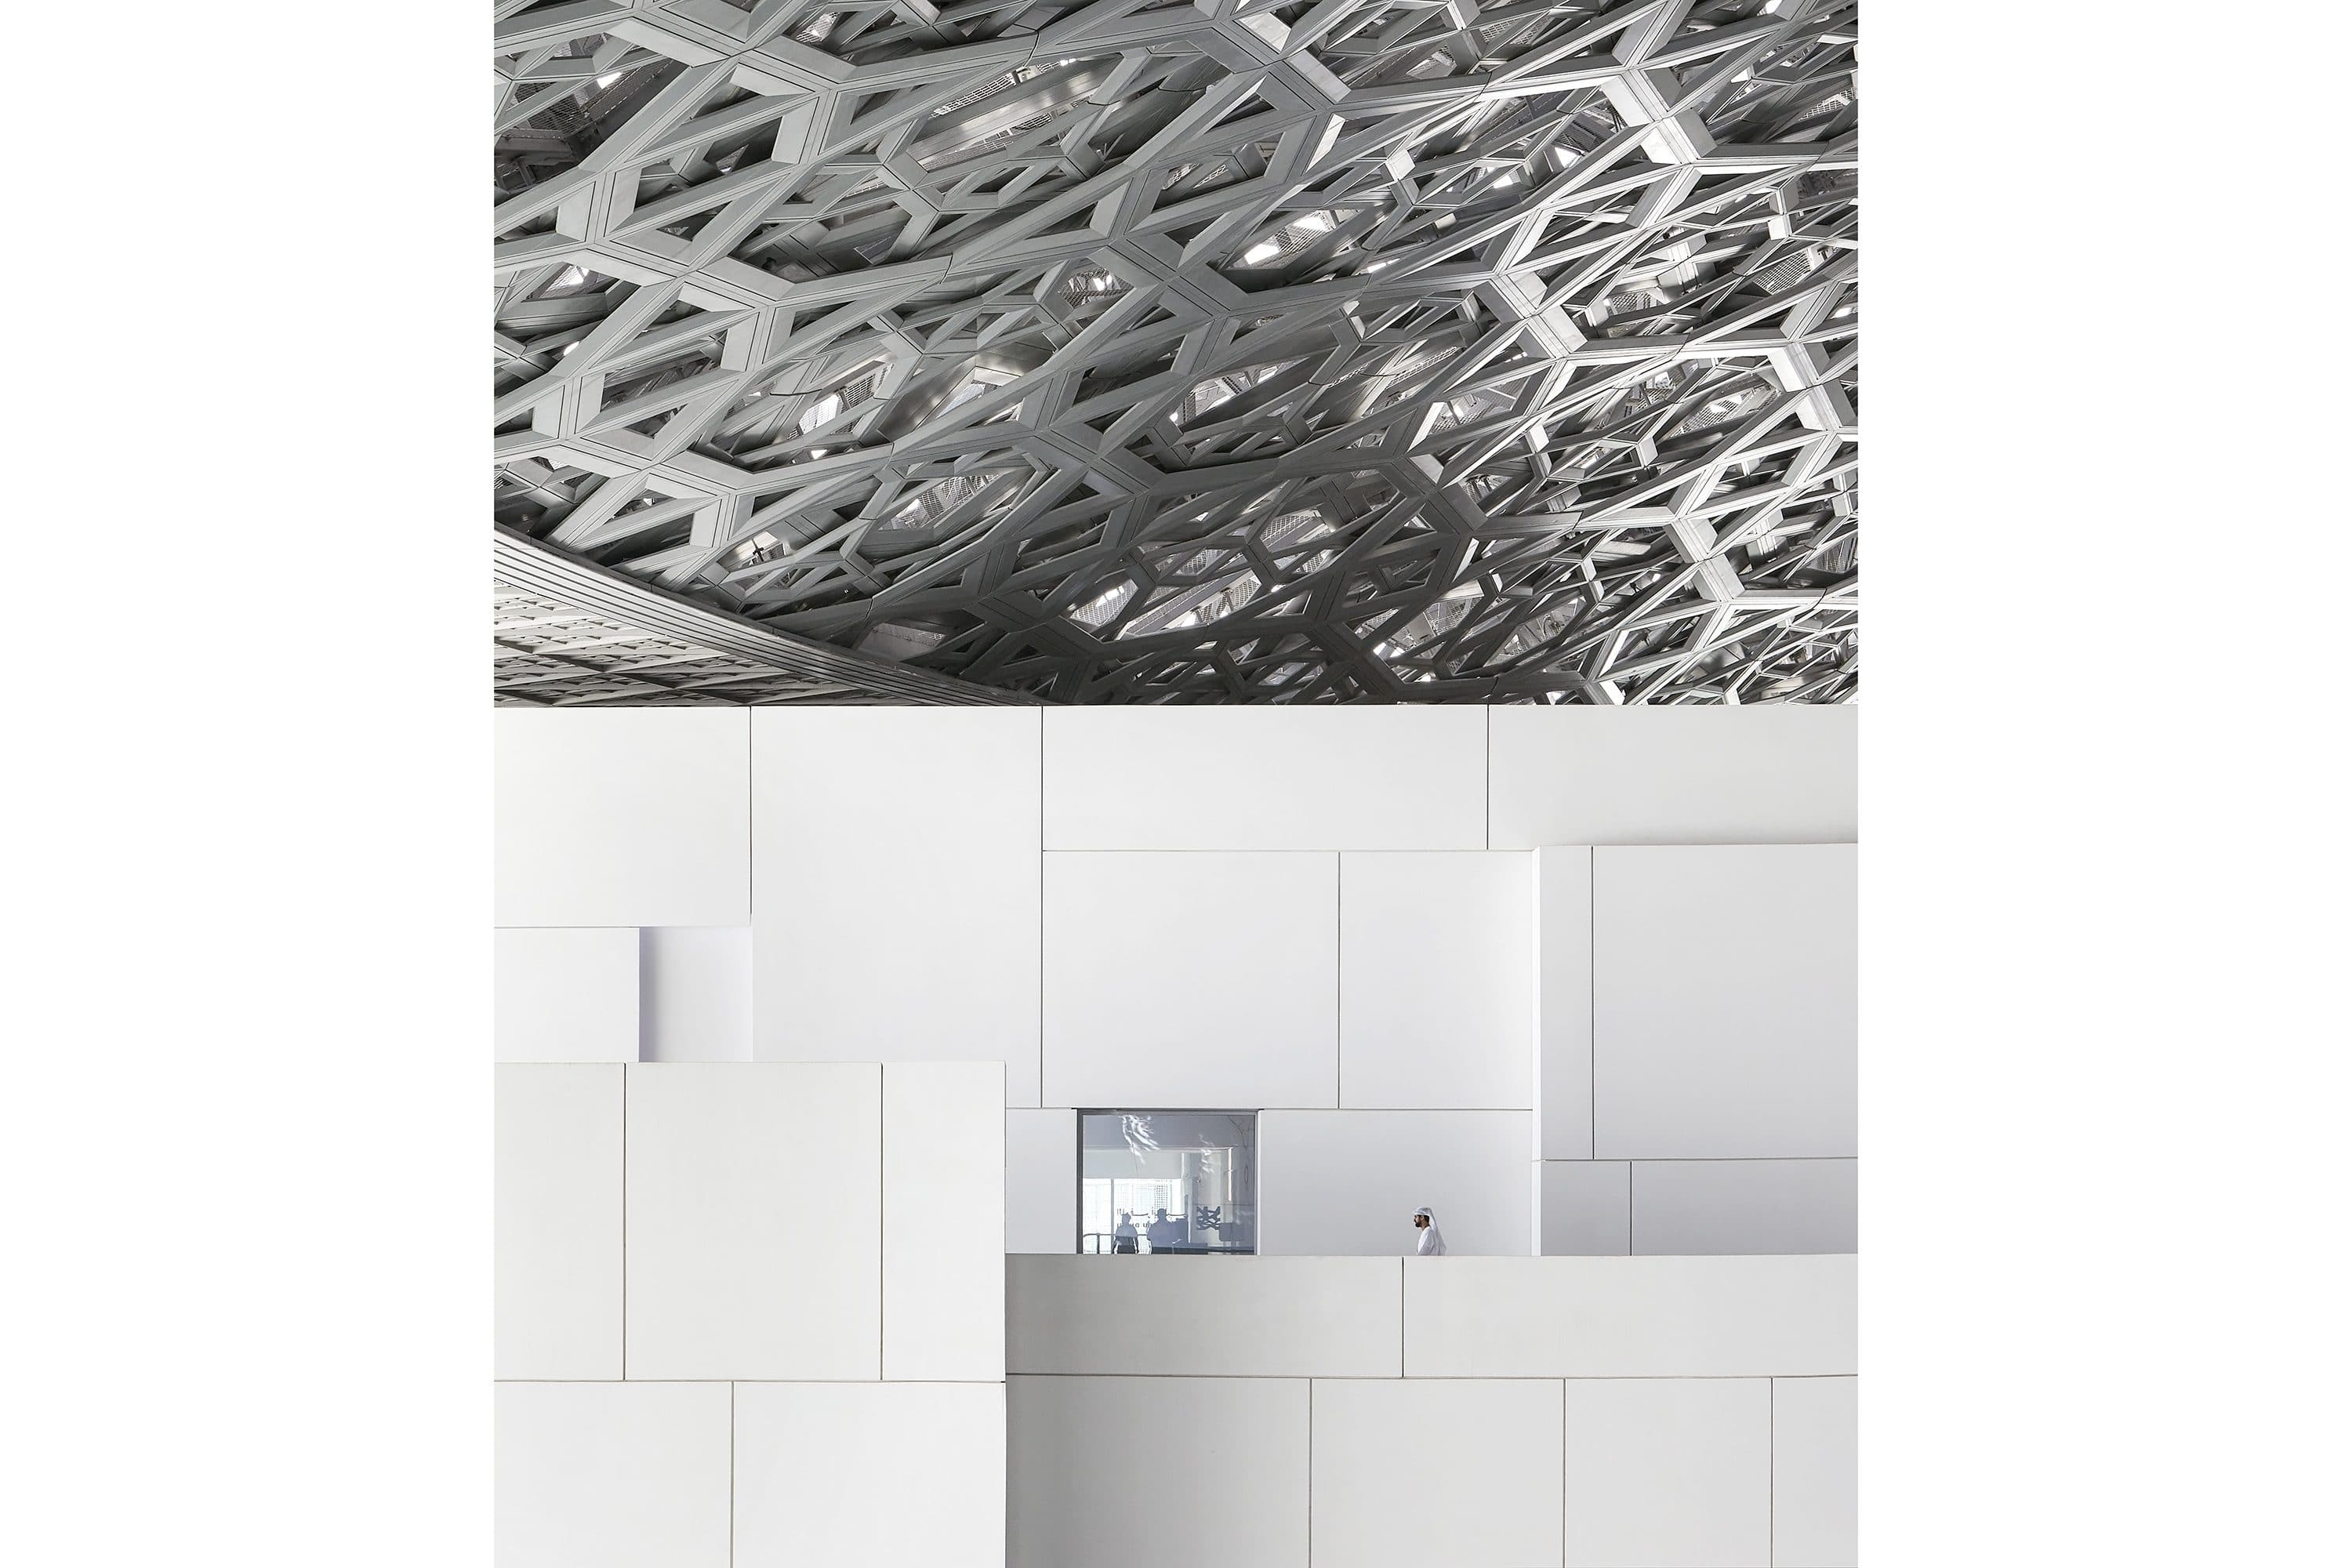 Interior architecture of Louvre Abu Dhabi